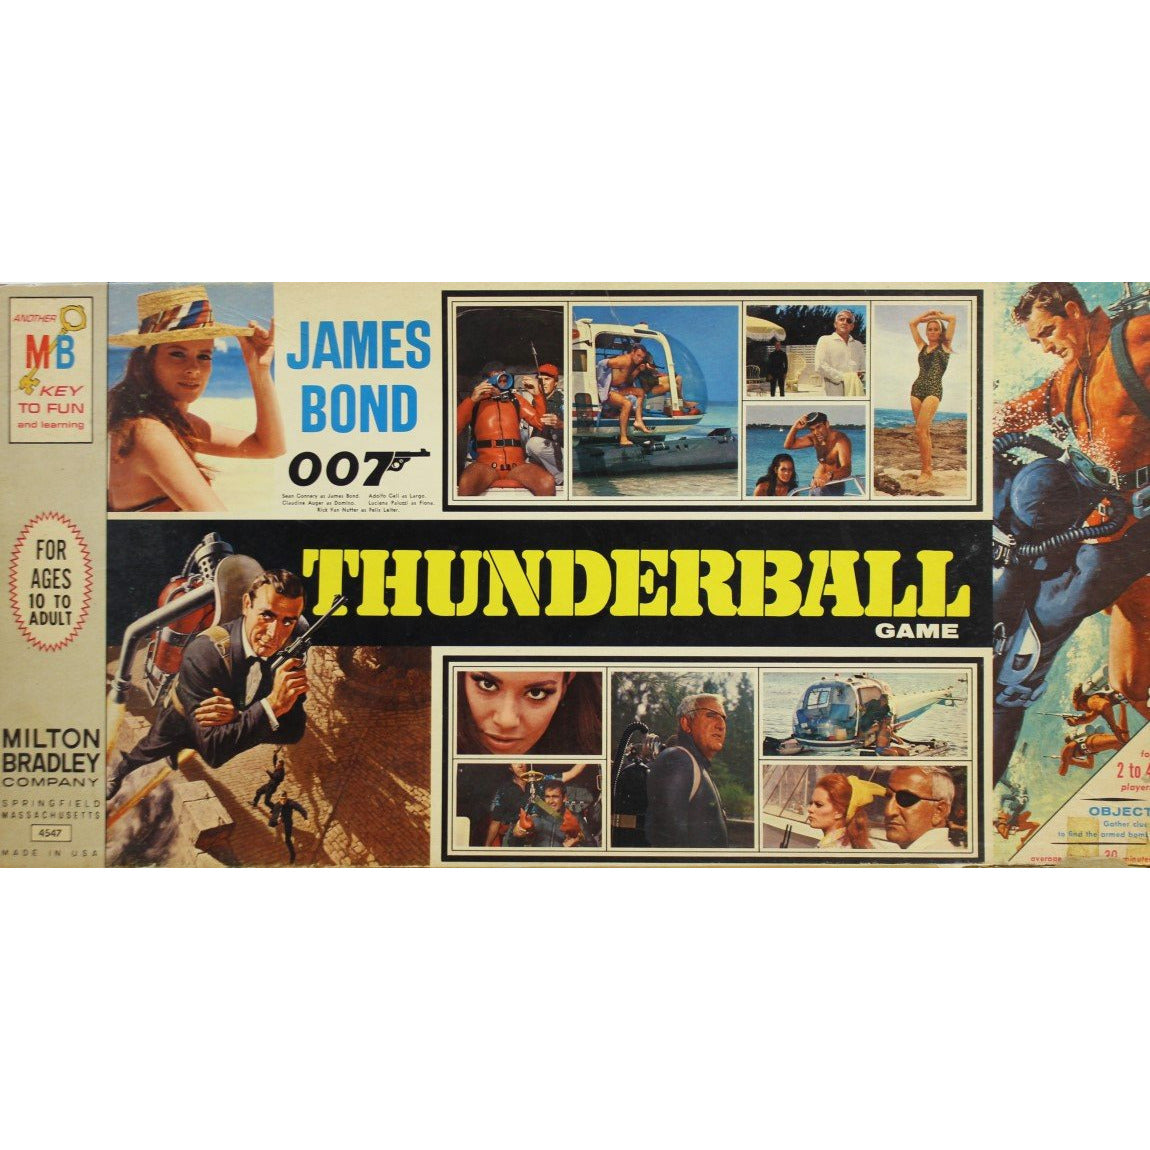 James Bond Thunderball Game